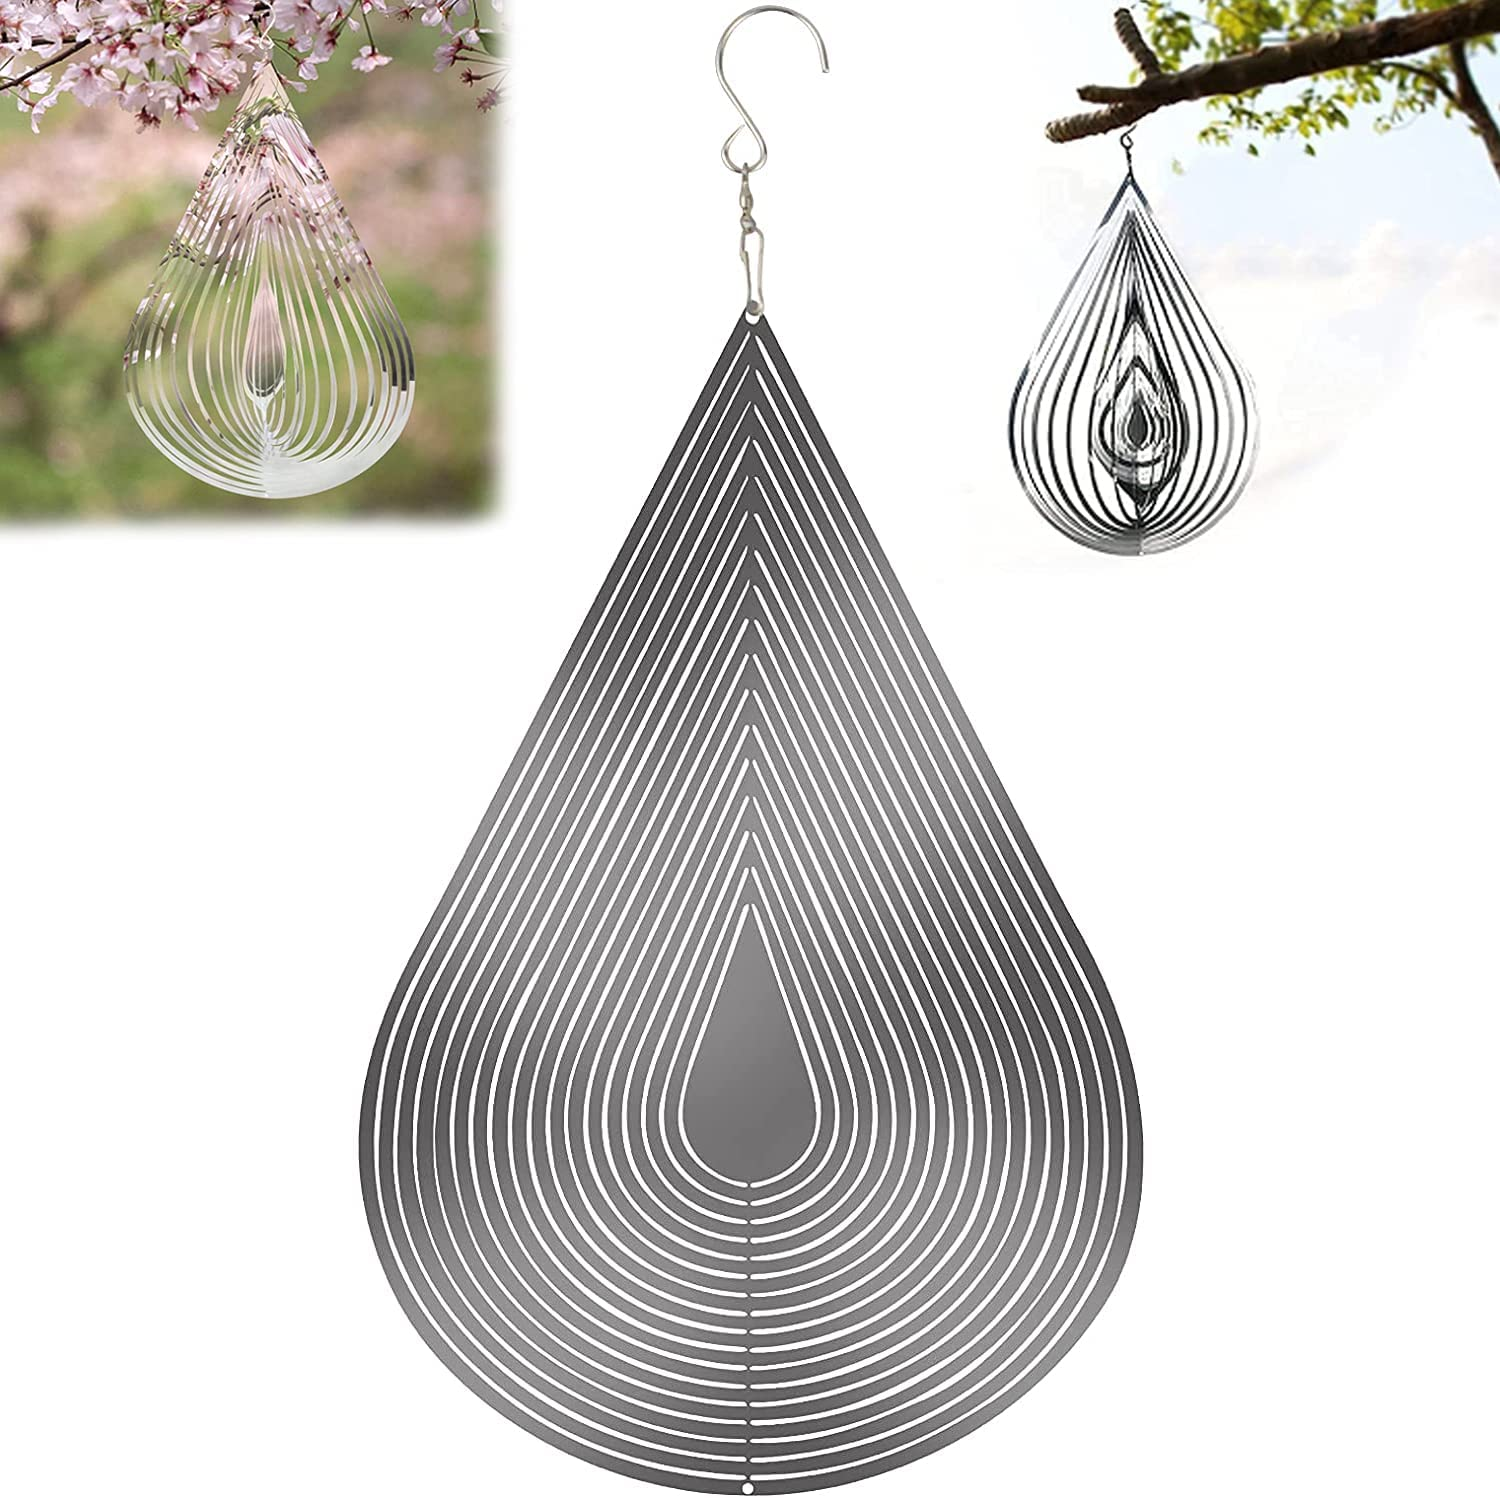 Wind Spinner 3D Flowing, Silver Water Drop Rotating Wind Spinners Outdoor Metal for Yard and Garden, Hanging Wind Garden Spinner Indoor Outdoor Decor Wind Spinners Outdoor Clearance Hook(11.8X 7.8in)